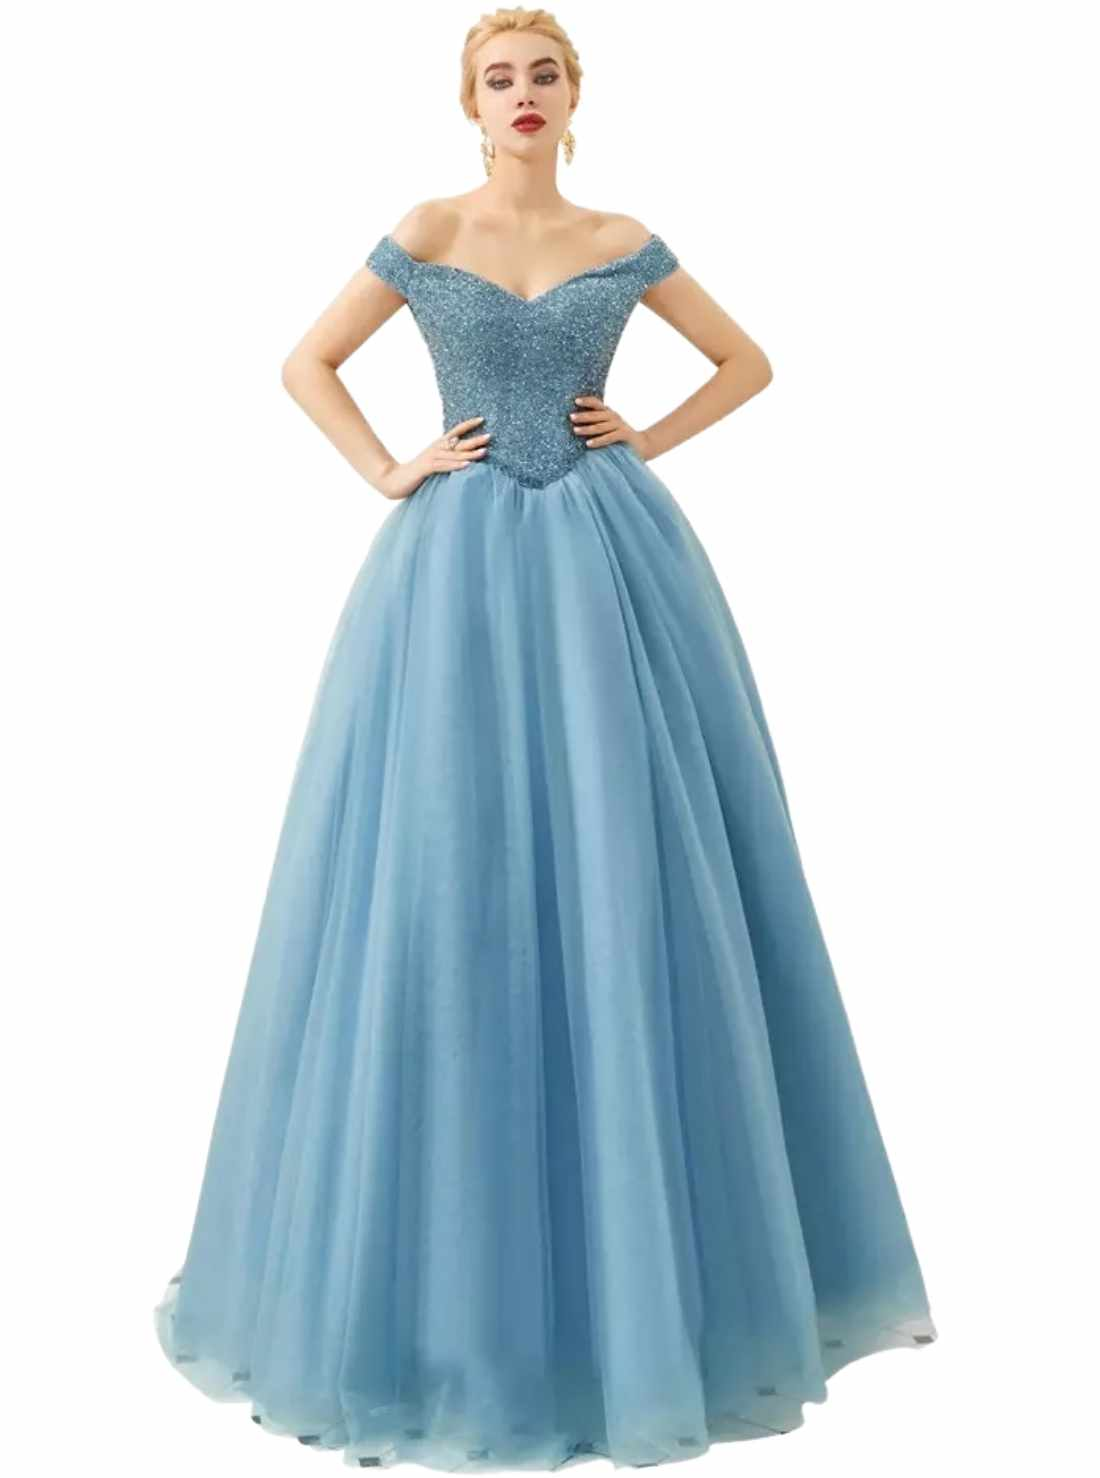 Long Blue Prom Dresses 2021 Prom Woman Dresses Sexy Evening Gowns